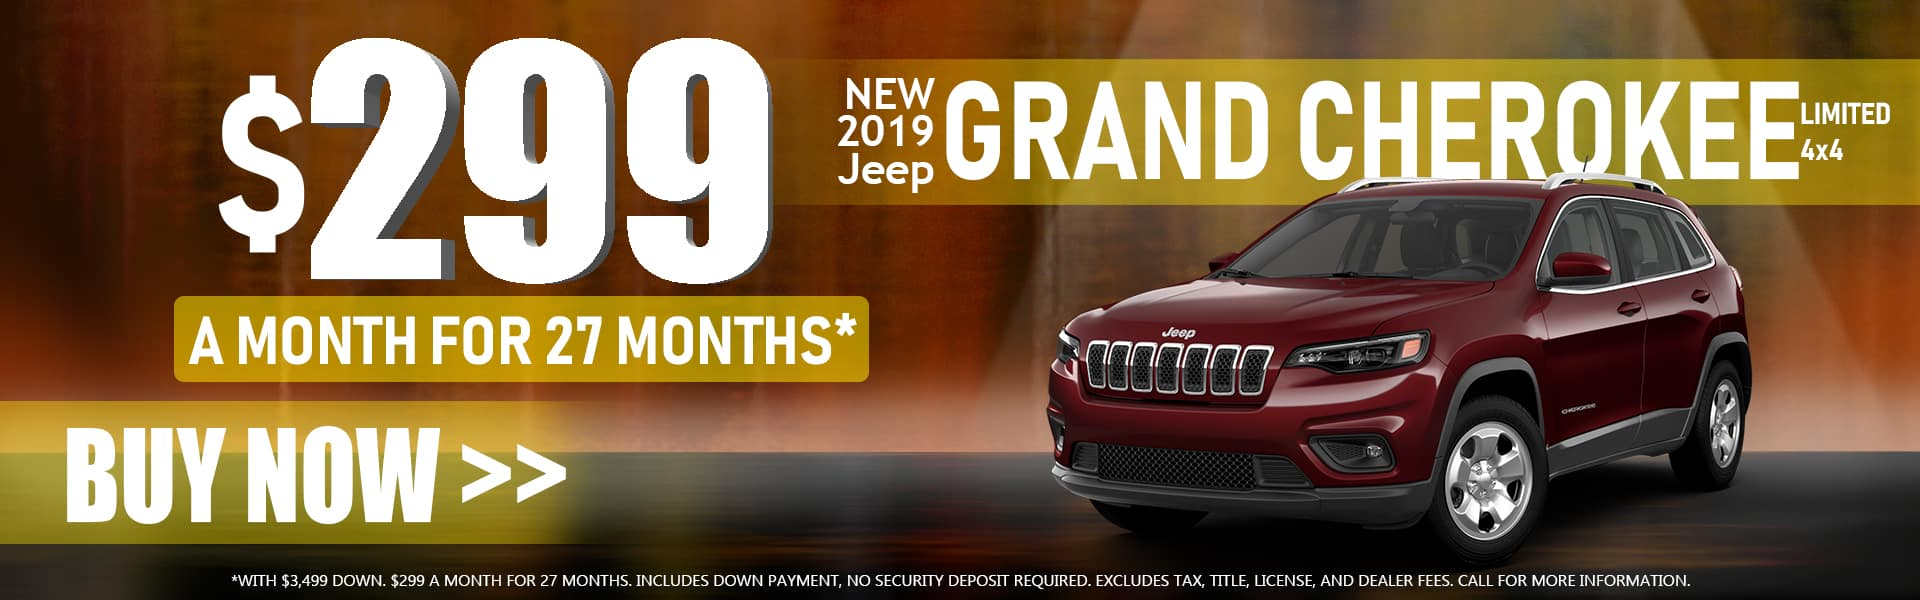 Car Dealerships That Pay Off Your Trade >> Sycamore Chrysler Dodge Jeep Ram New Used Car Dealership